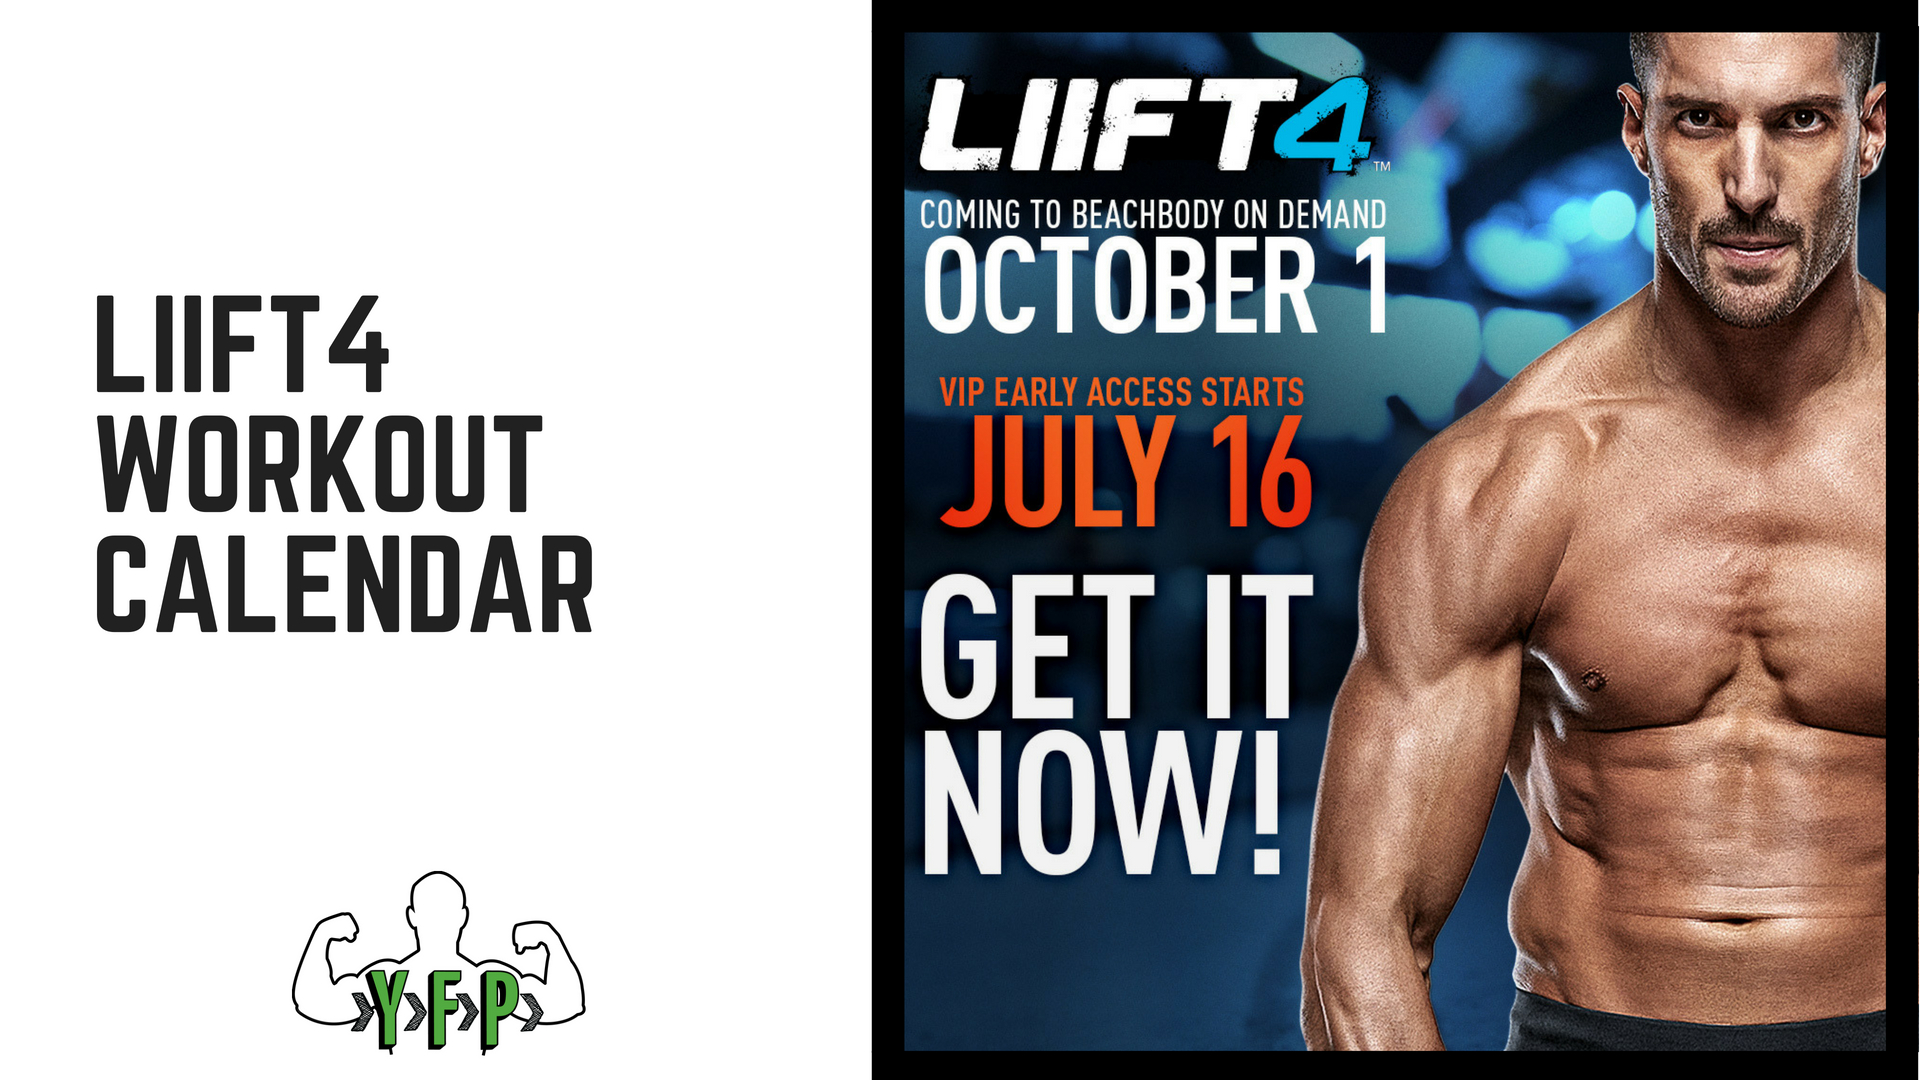 LIIFT4 - Workout Calendar